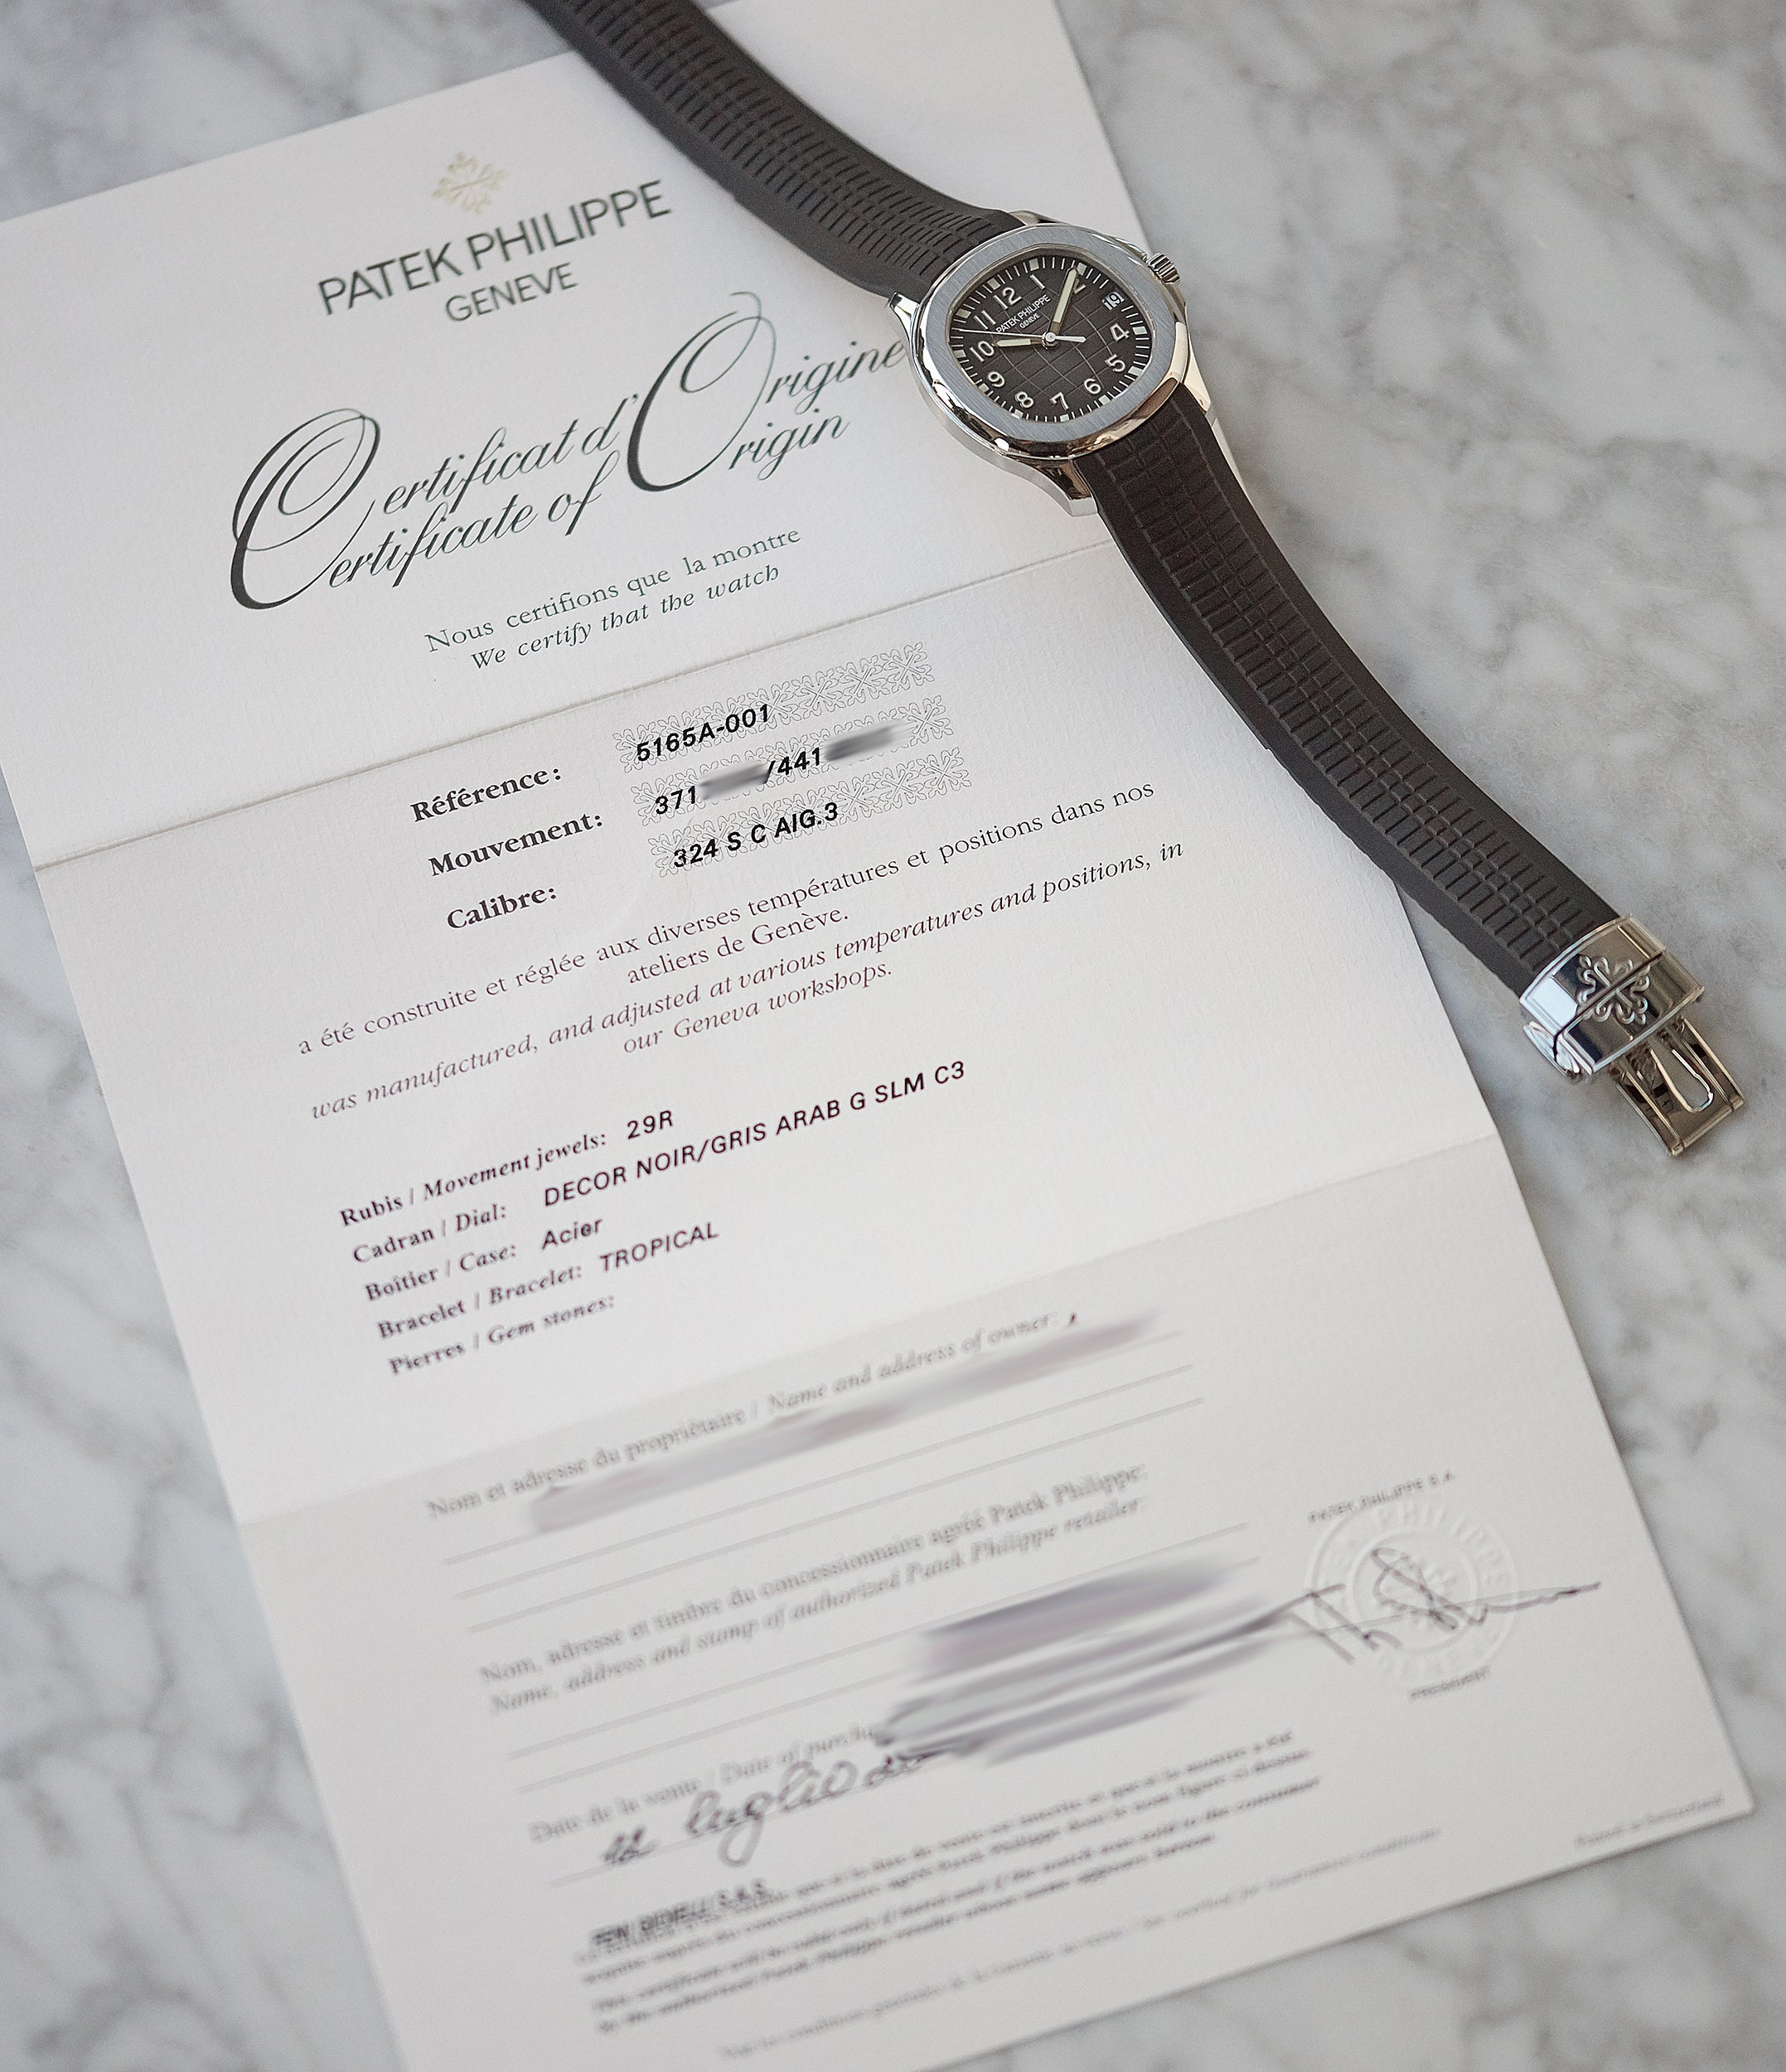 certificate of origin Patek Philippe Aquanaut 5165A-001 transitional steel sport watch for sale online at A Collected Man London UK specialist of rare watches